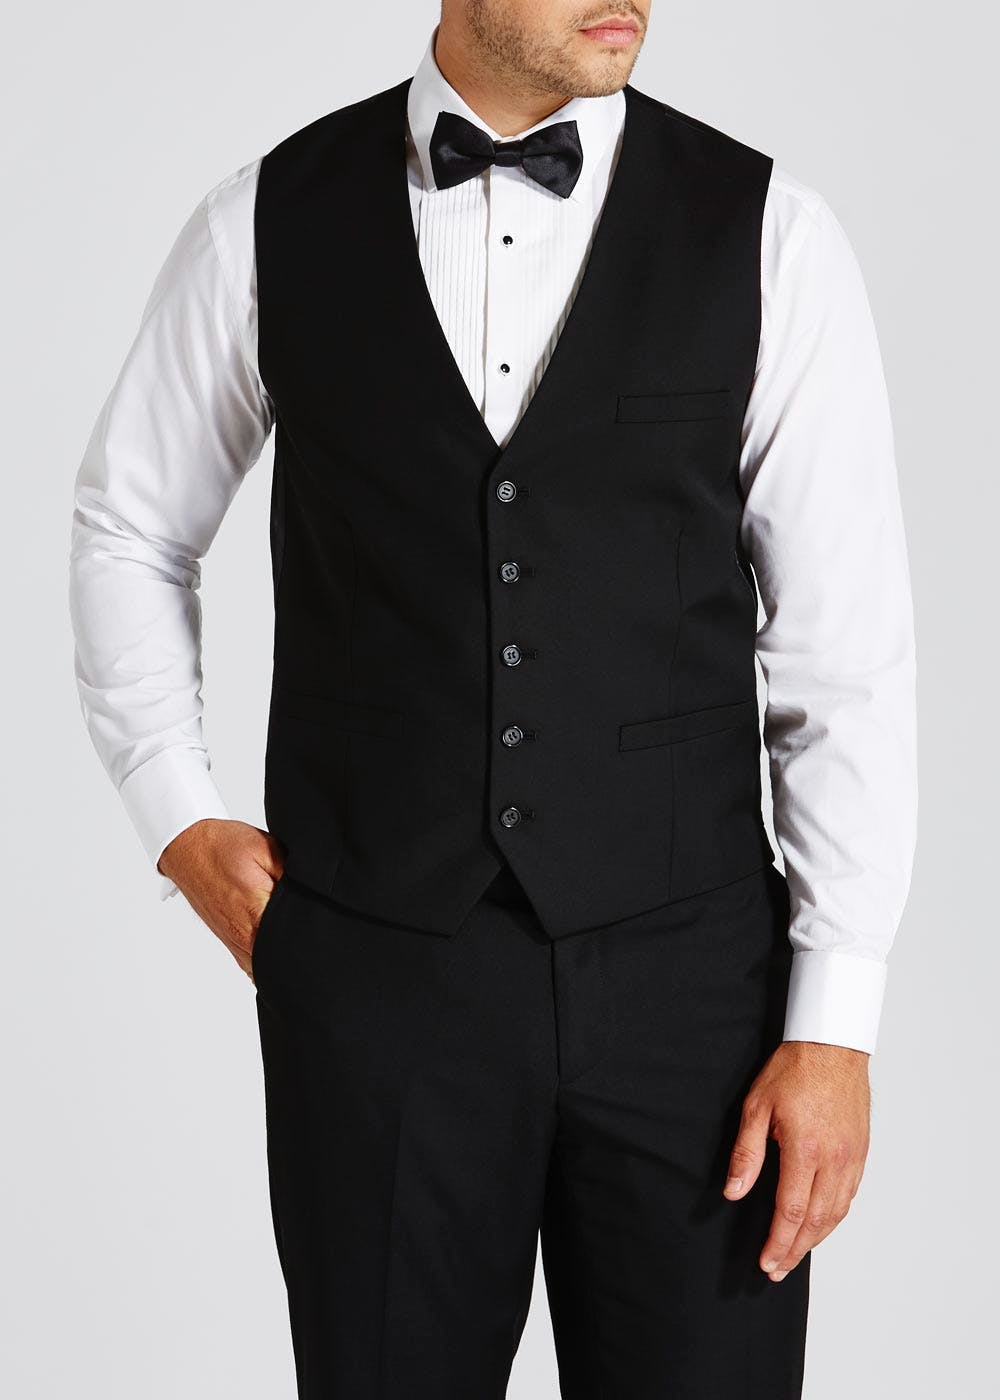 Need a dinner suit for a black tie event? Shop high quality men's Tuxedos for less than the cost of hiring. With a huge range of colours, styles and fits for sale, order today to get your evening wear fast with our next day delivery options.